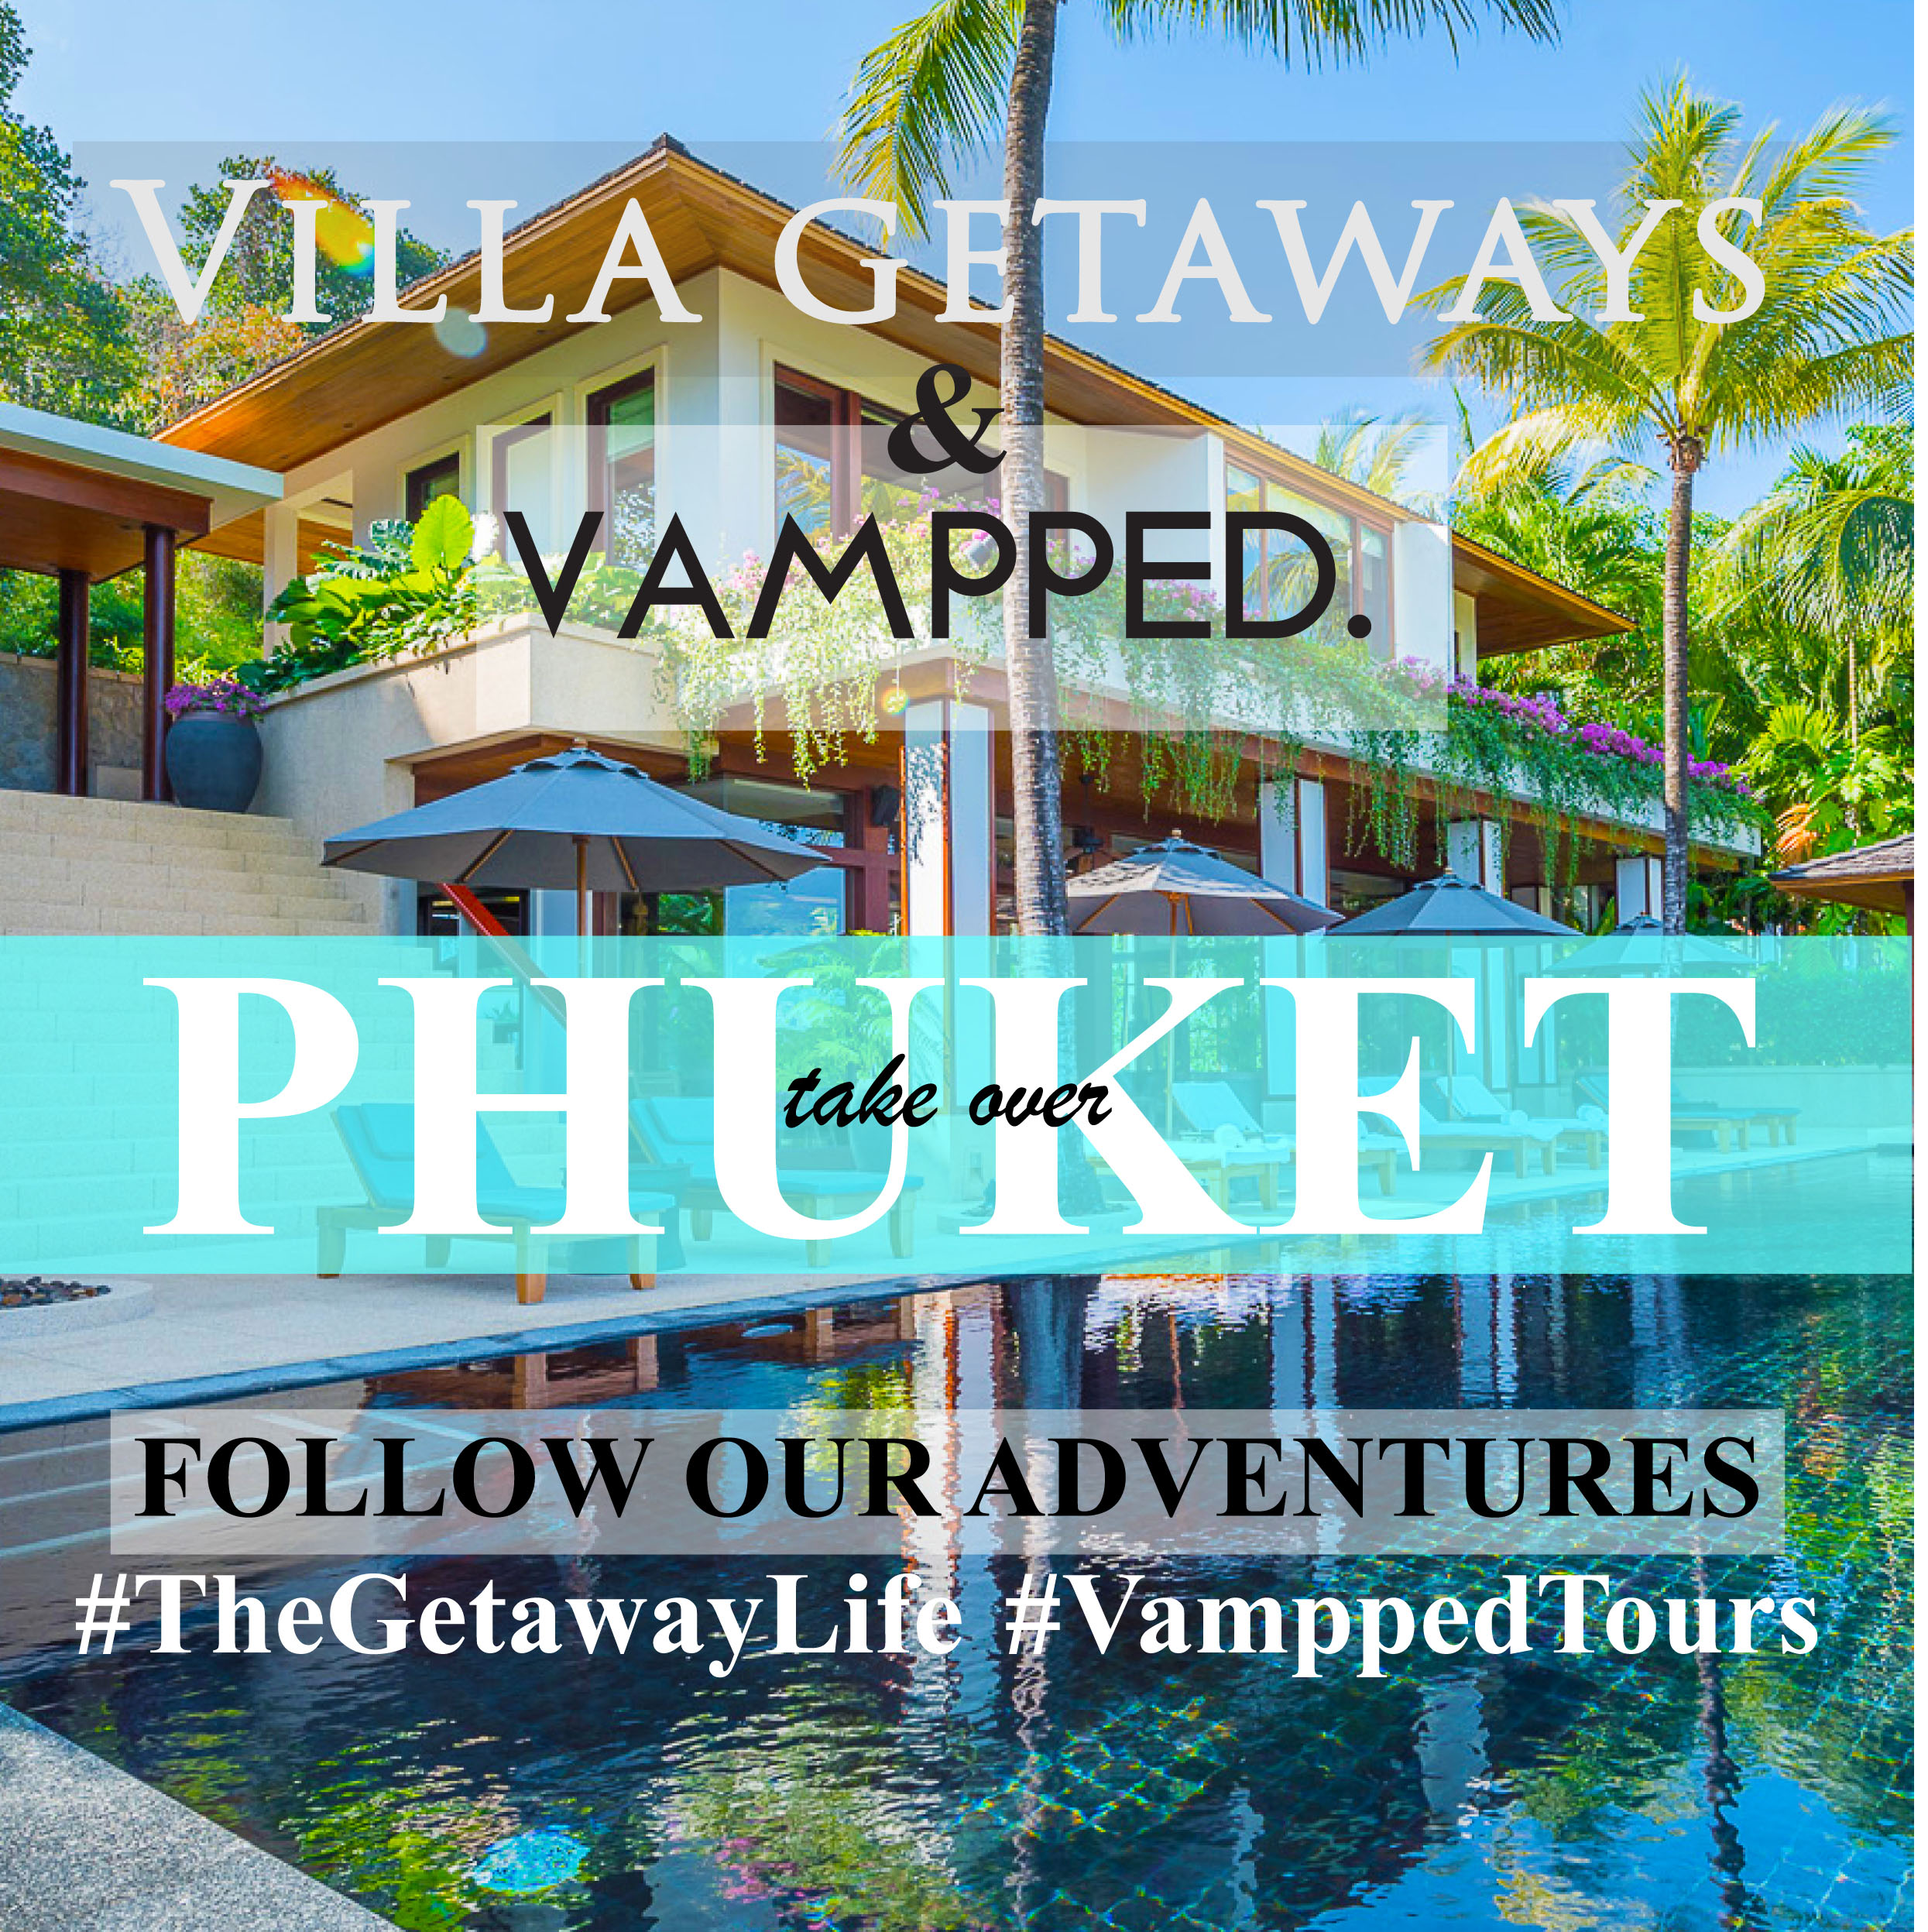 Vampped in Phuket with Villa Getaways